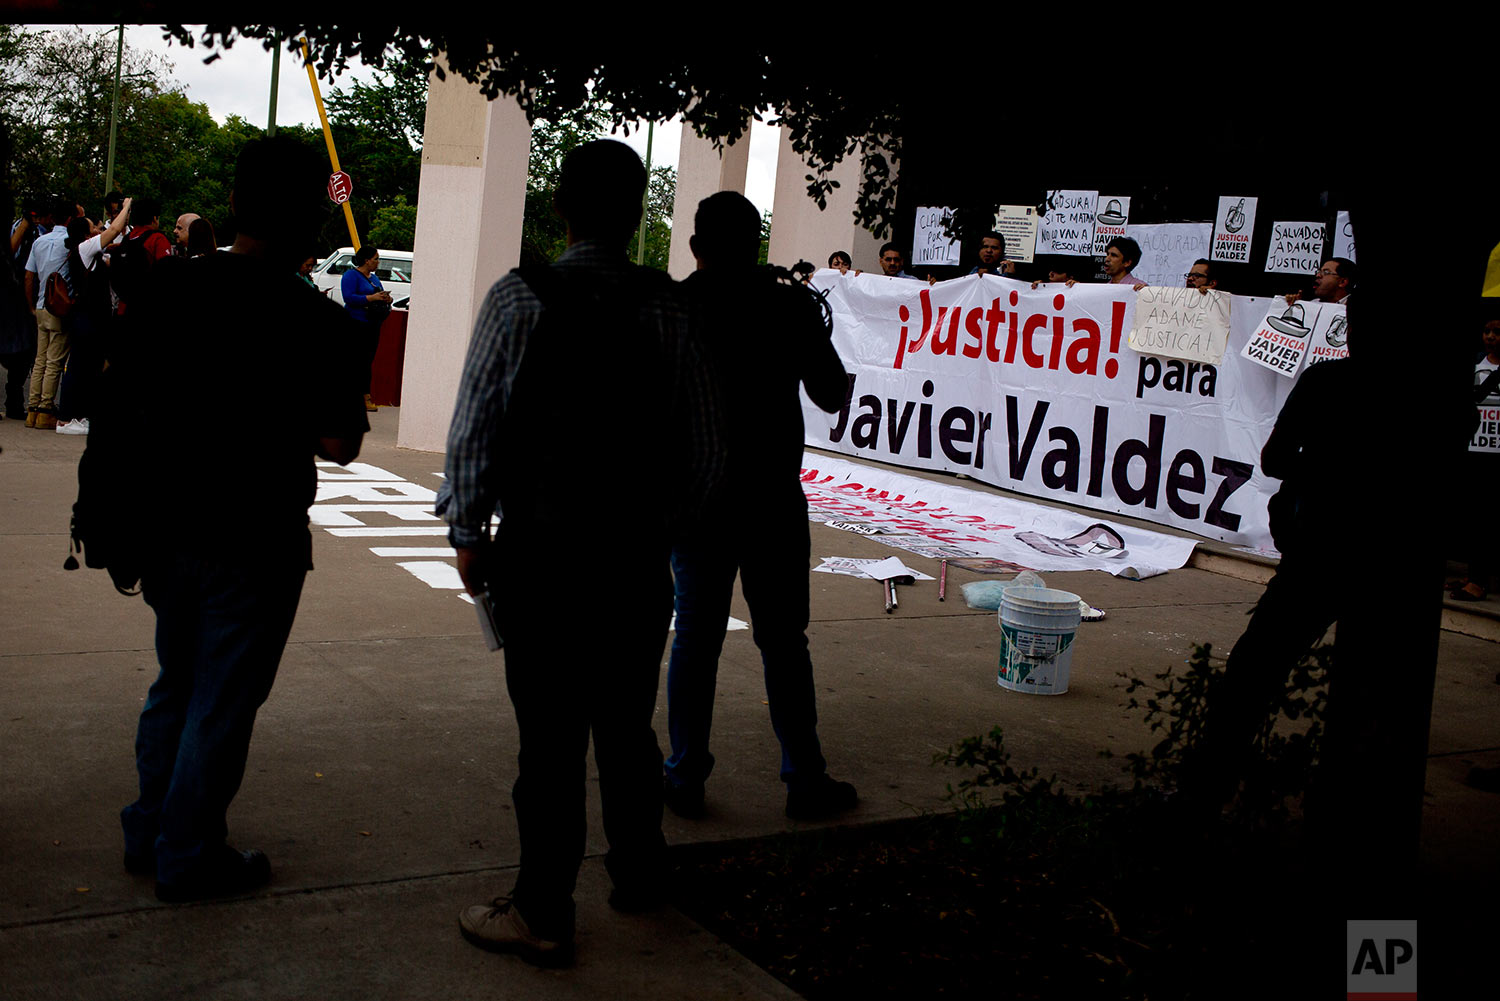 In this June 28, 2017 photo, journalists protest outside the Sinaloa state attorney's general office, after the killing of yet another journalist, and demand justice for the killing of Javier Valdez in Culiacan, Sinaloa state, Mexico. On the morning of May 15, Valdez left his Riodoce office and managed to drive just a couple of blocks before his red Toyota Corolla was stopped by two men; he was forced out of his car and shot 12 times. (AP Photo/Enric Marti)